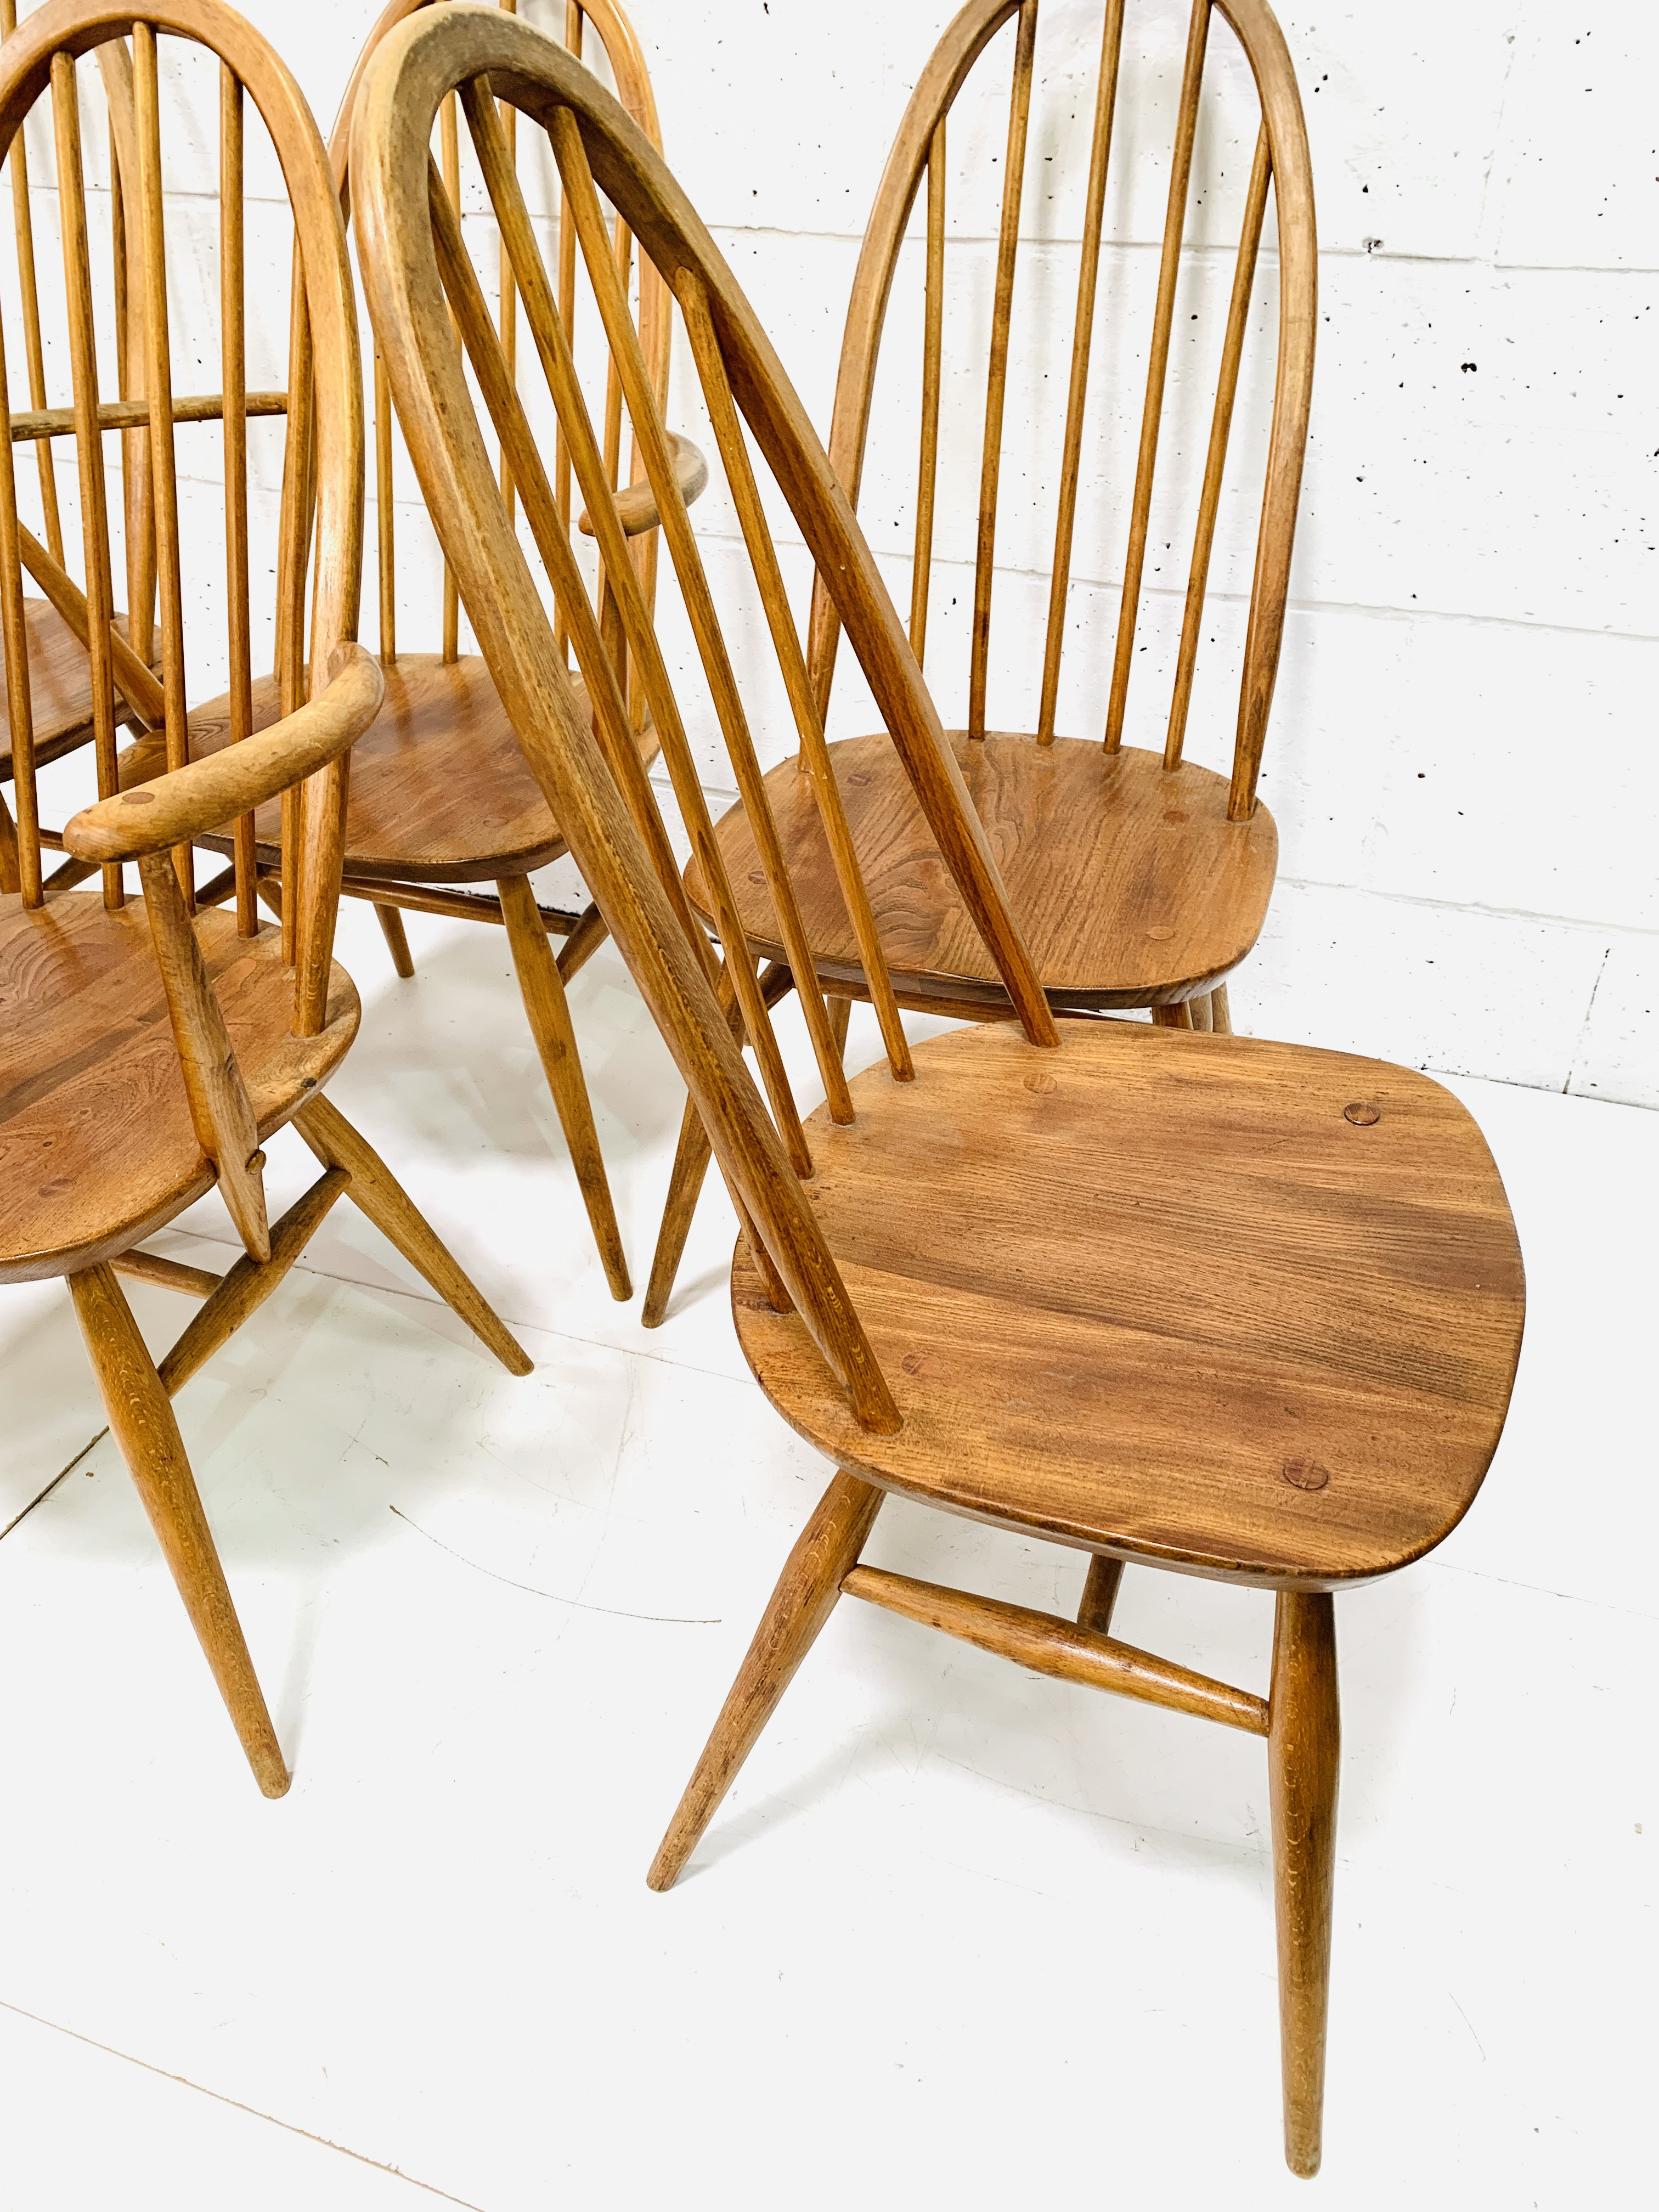 Set of six (4 + 2) Ercol high rail back dining chairs - Image 4 of 5